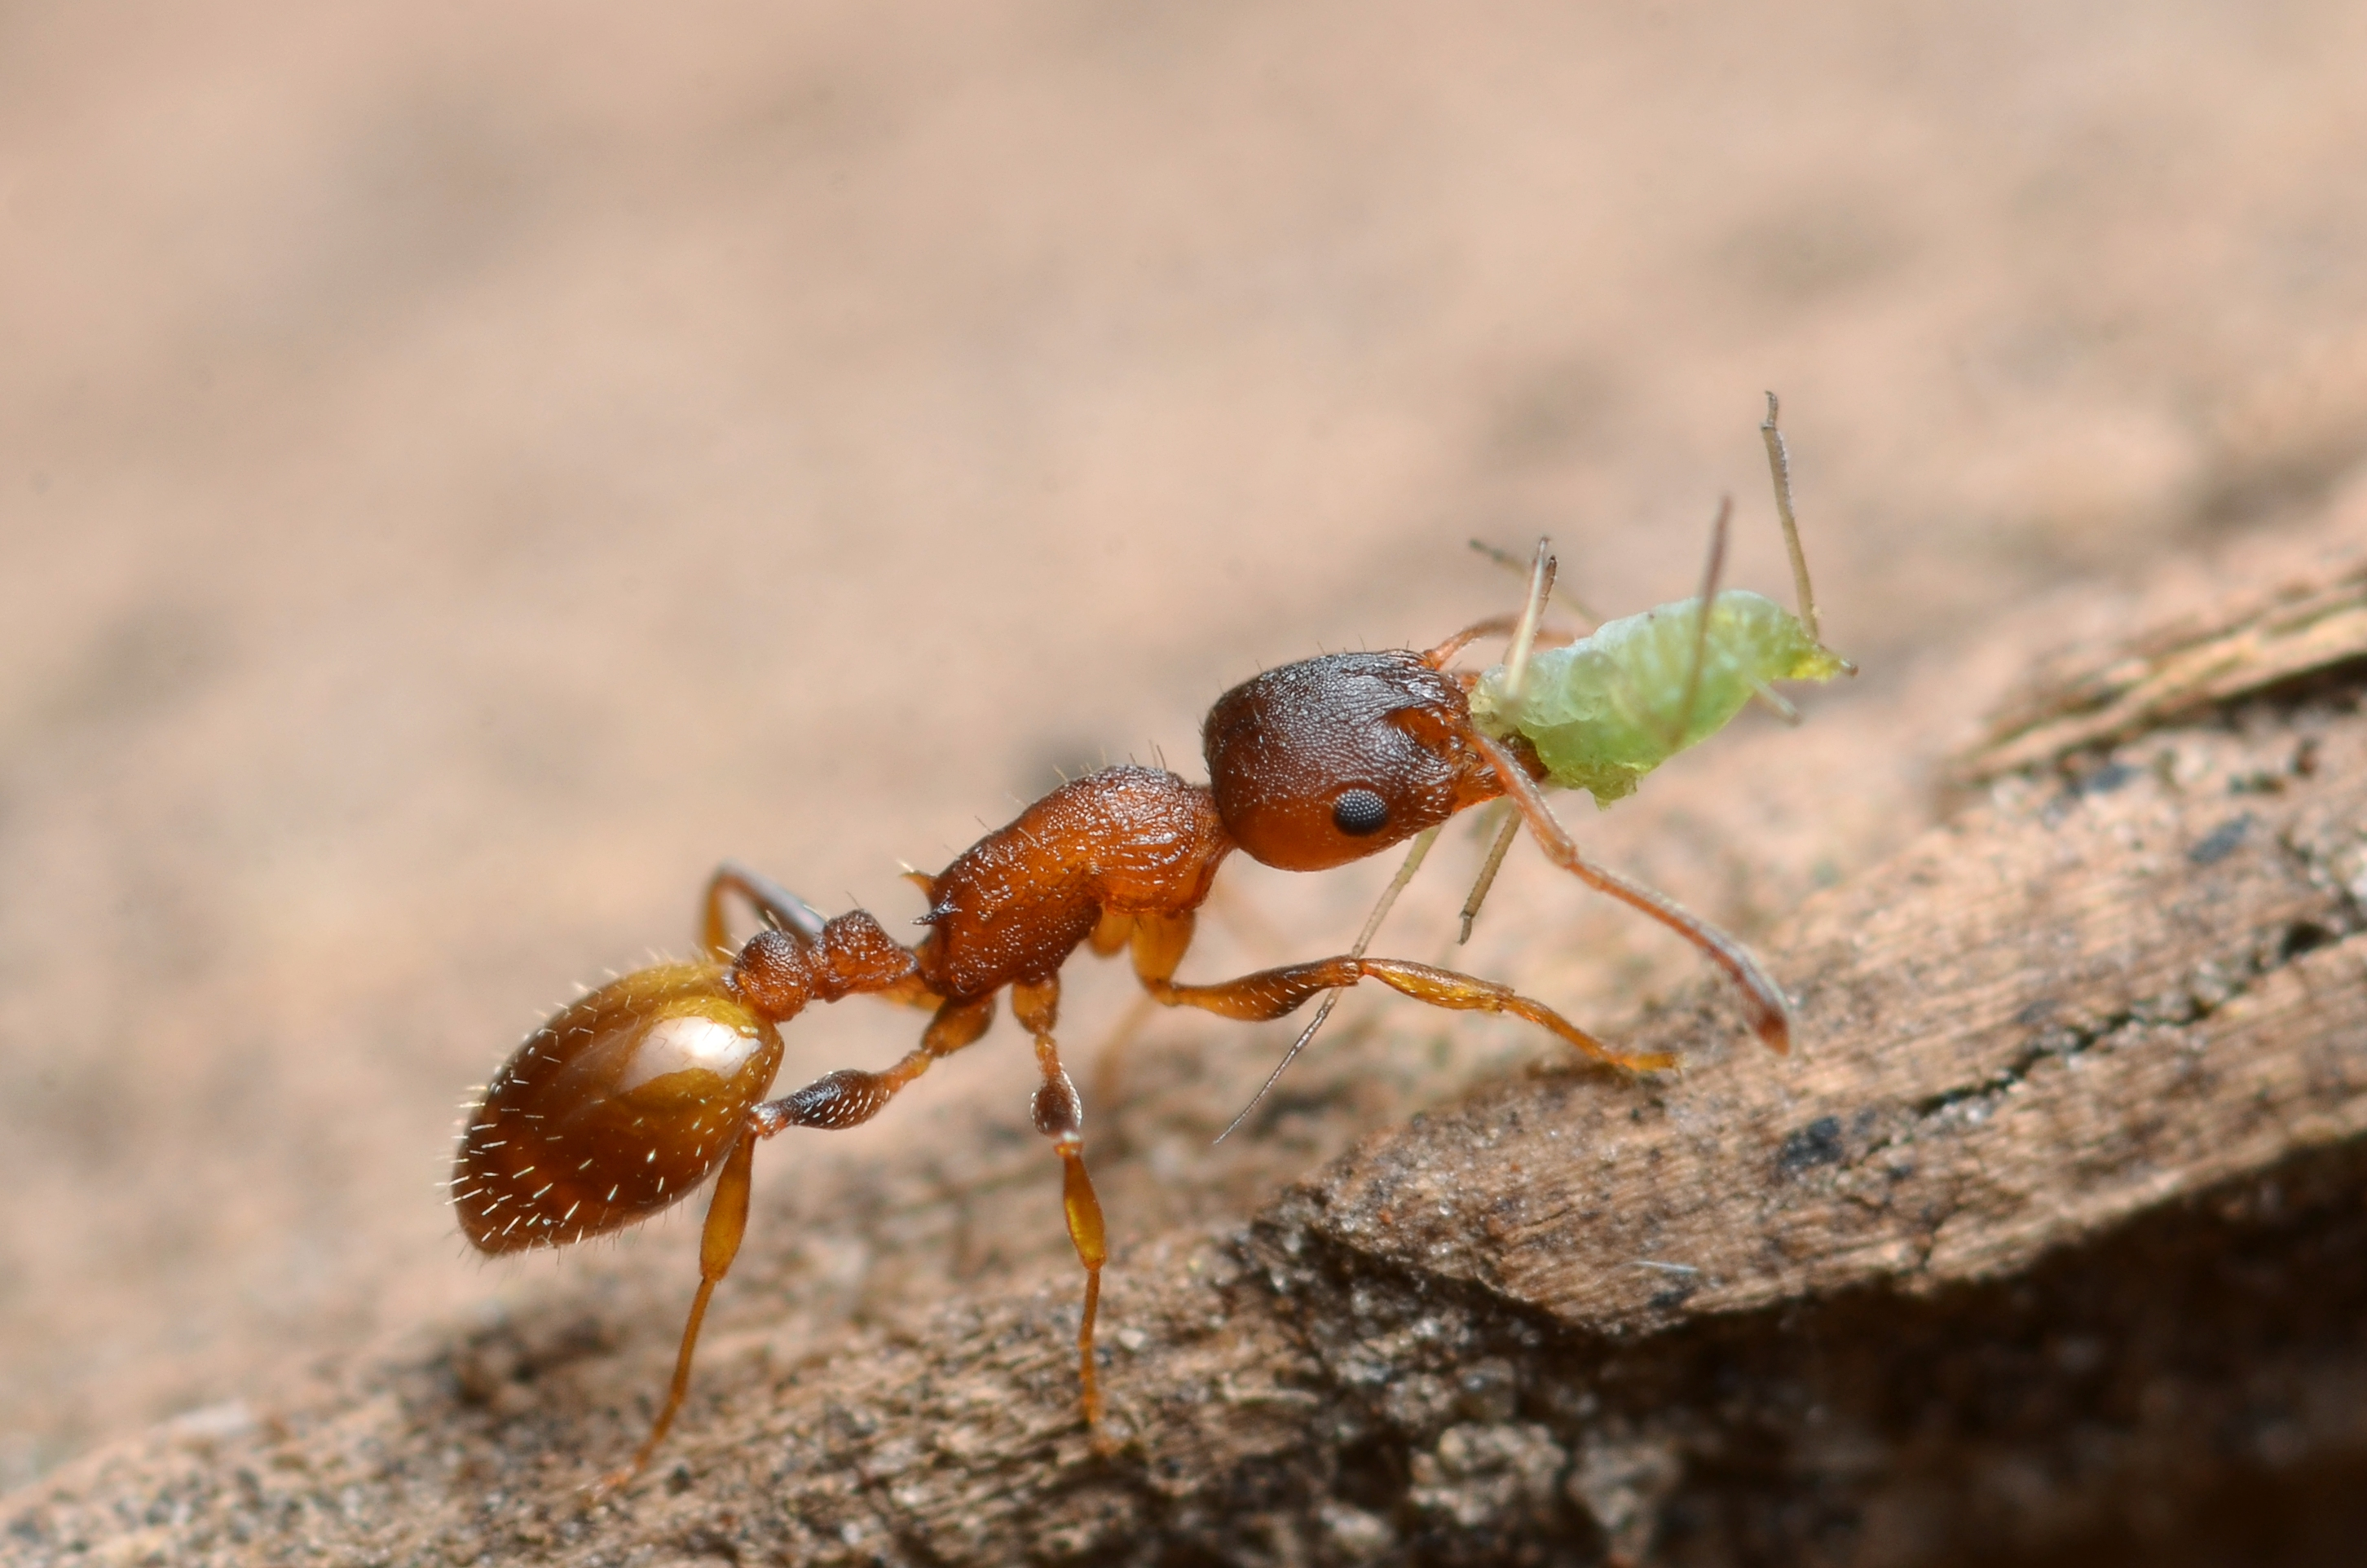 A tapeworm has been found to bestow the gift of a long, lazy life on a species of Temnothorax ant ... but it's not all good news